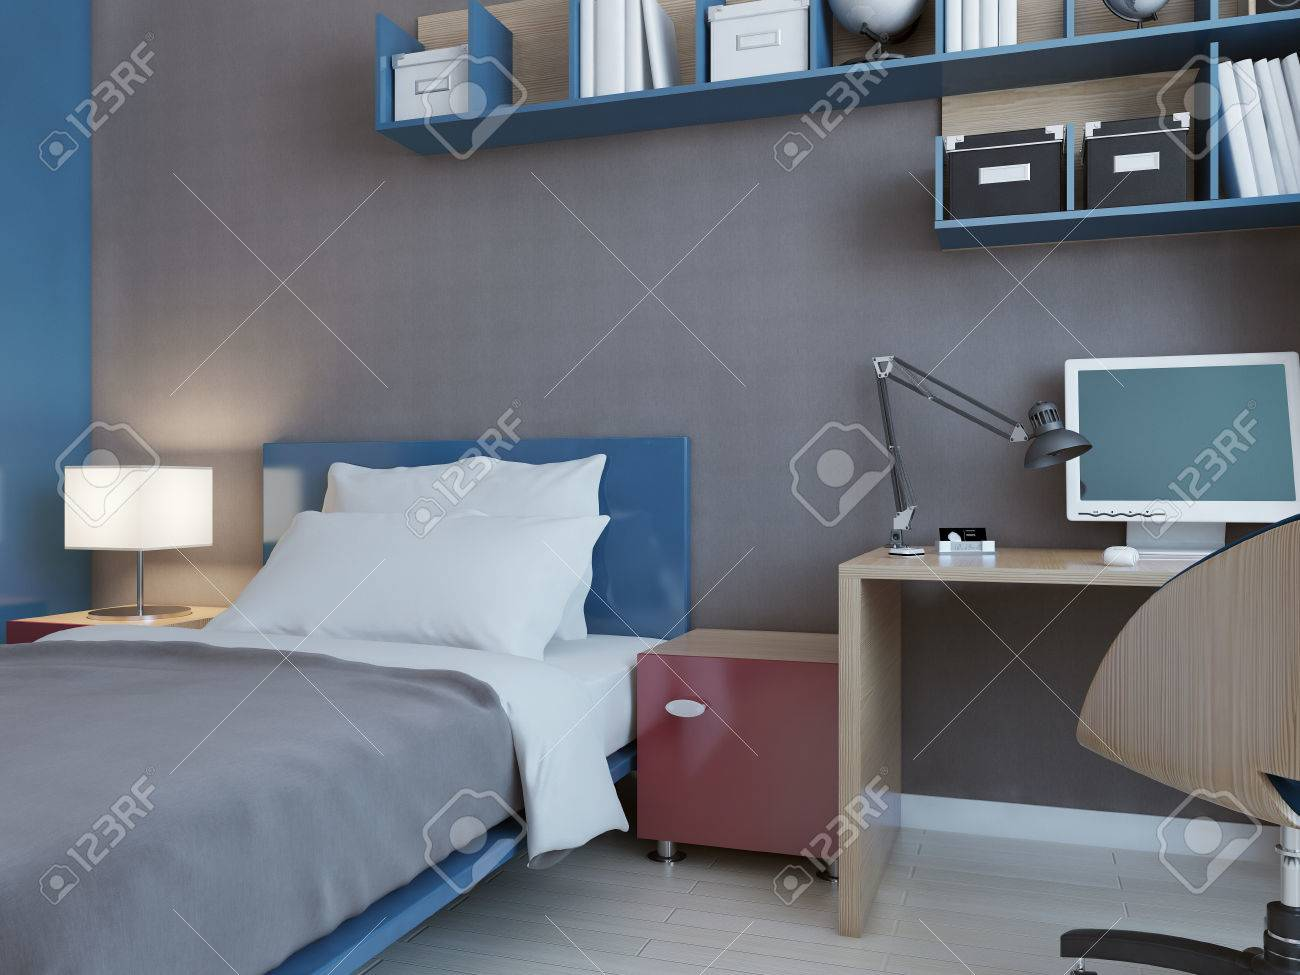 Grey and blue kids bedroom - Idea Of Children Bedroom With Grey Walls Blue And Red Decoration Minimalistic Wall System